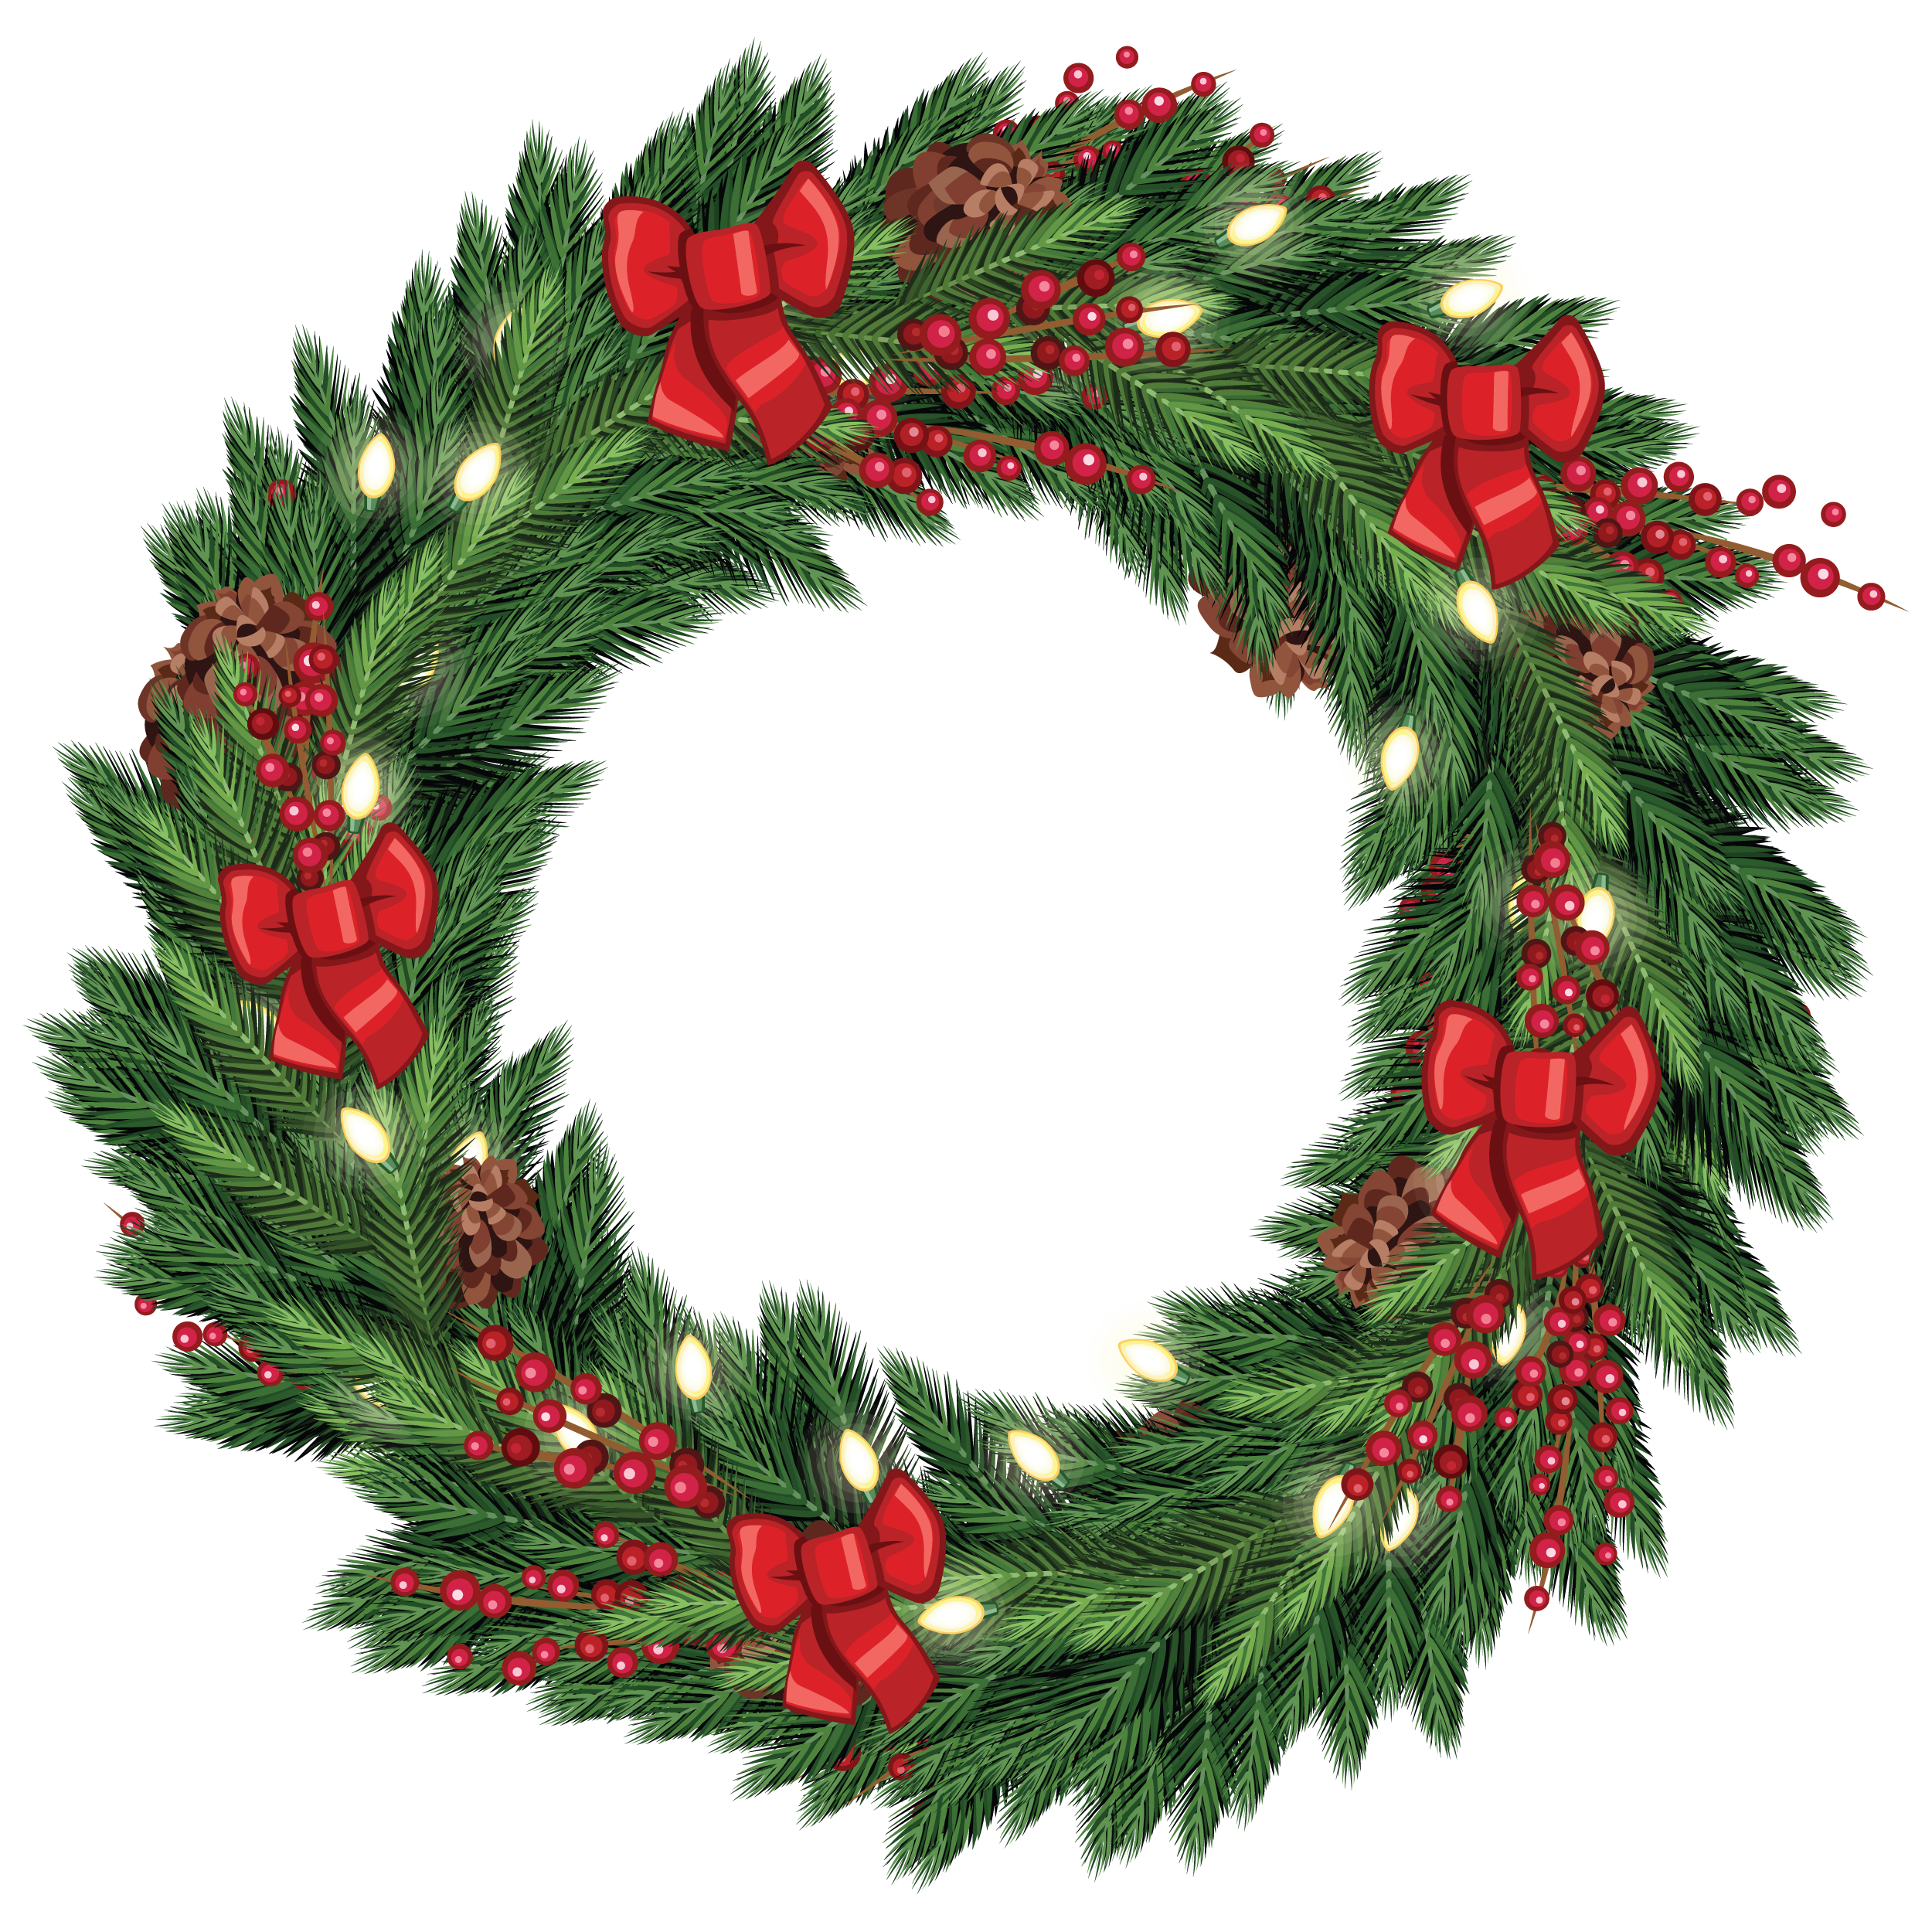 Free graphic from tradigitalart. Christmas wreath vector png